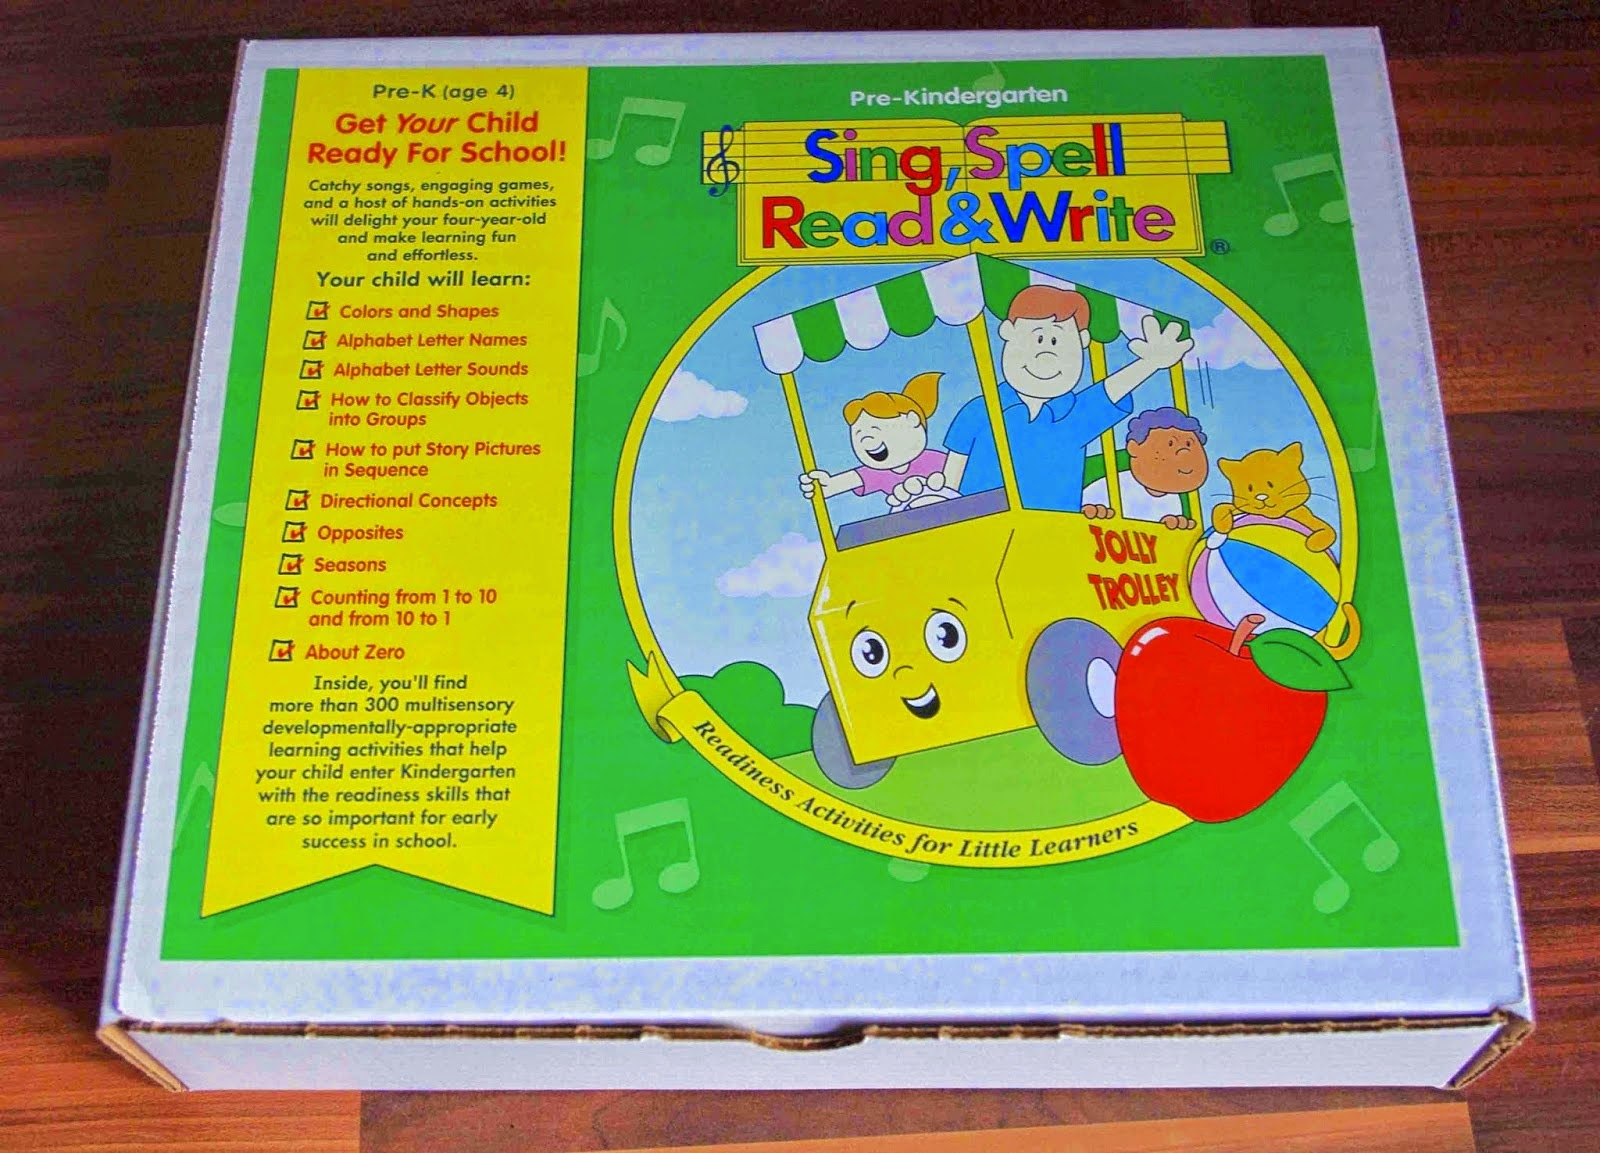 sing spell read and write Over 20% off and free shipping for a limited time on the award winning sing spell read and write curriculum teach your child or student to read with these award winning reading program from sing spell read and write.